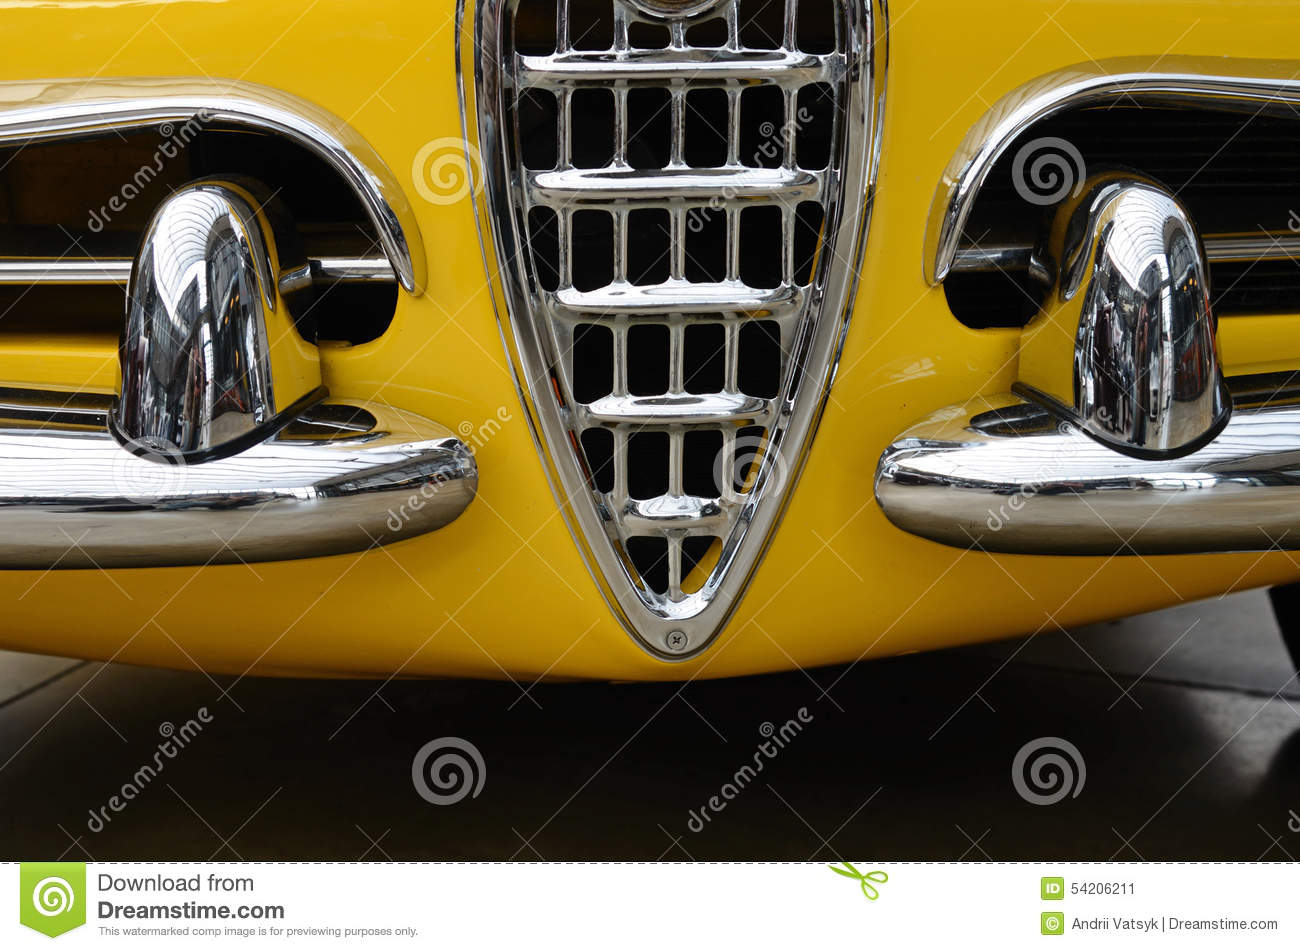 Interesting Design Of Old Car With Original Headlight And Bumper - Interesting old cars